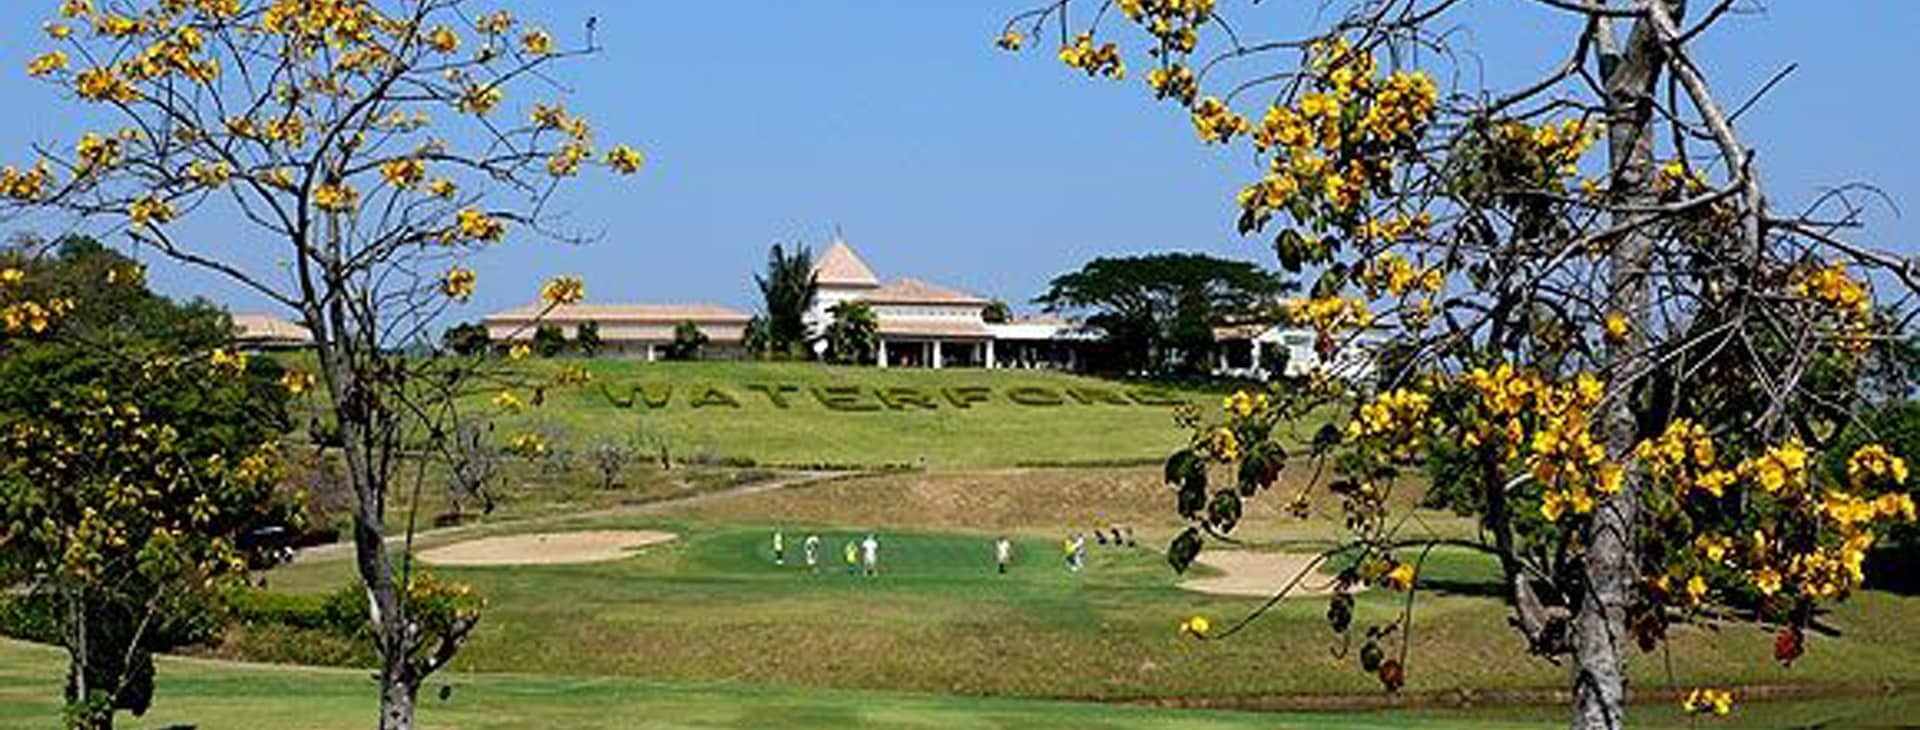 Golf Thailand_Golf Courses_Chiang Rai_Waterford Valley Golf Club and Resort